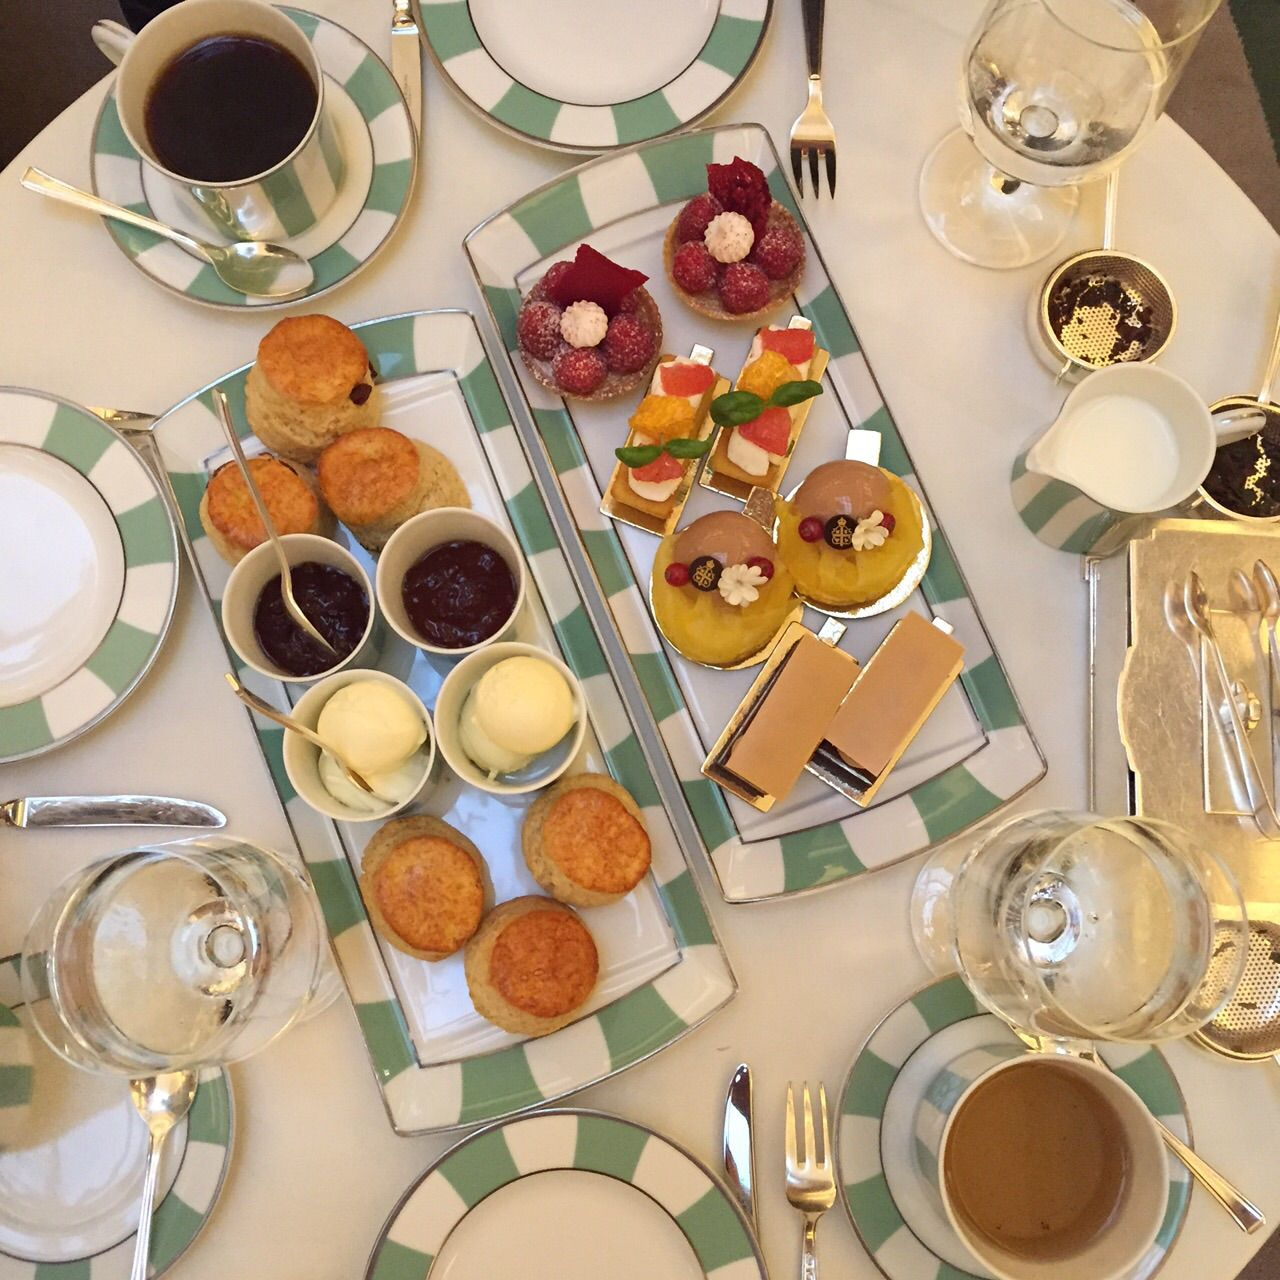 Posted on Cityloque AFTERNOON TEA Treat yourself with one of London's best afternoon teas at the Claridge's